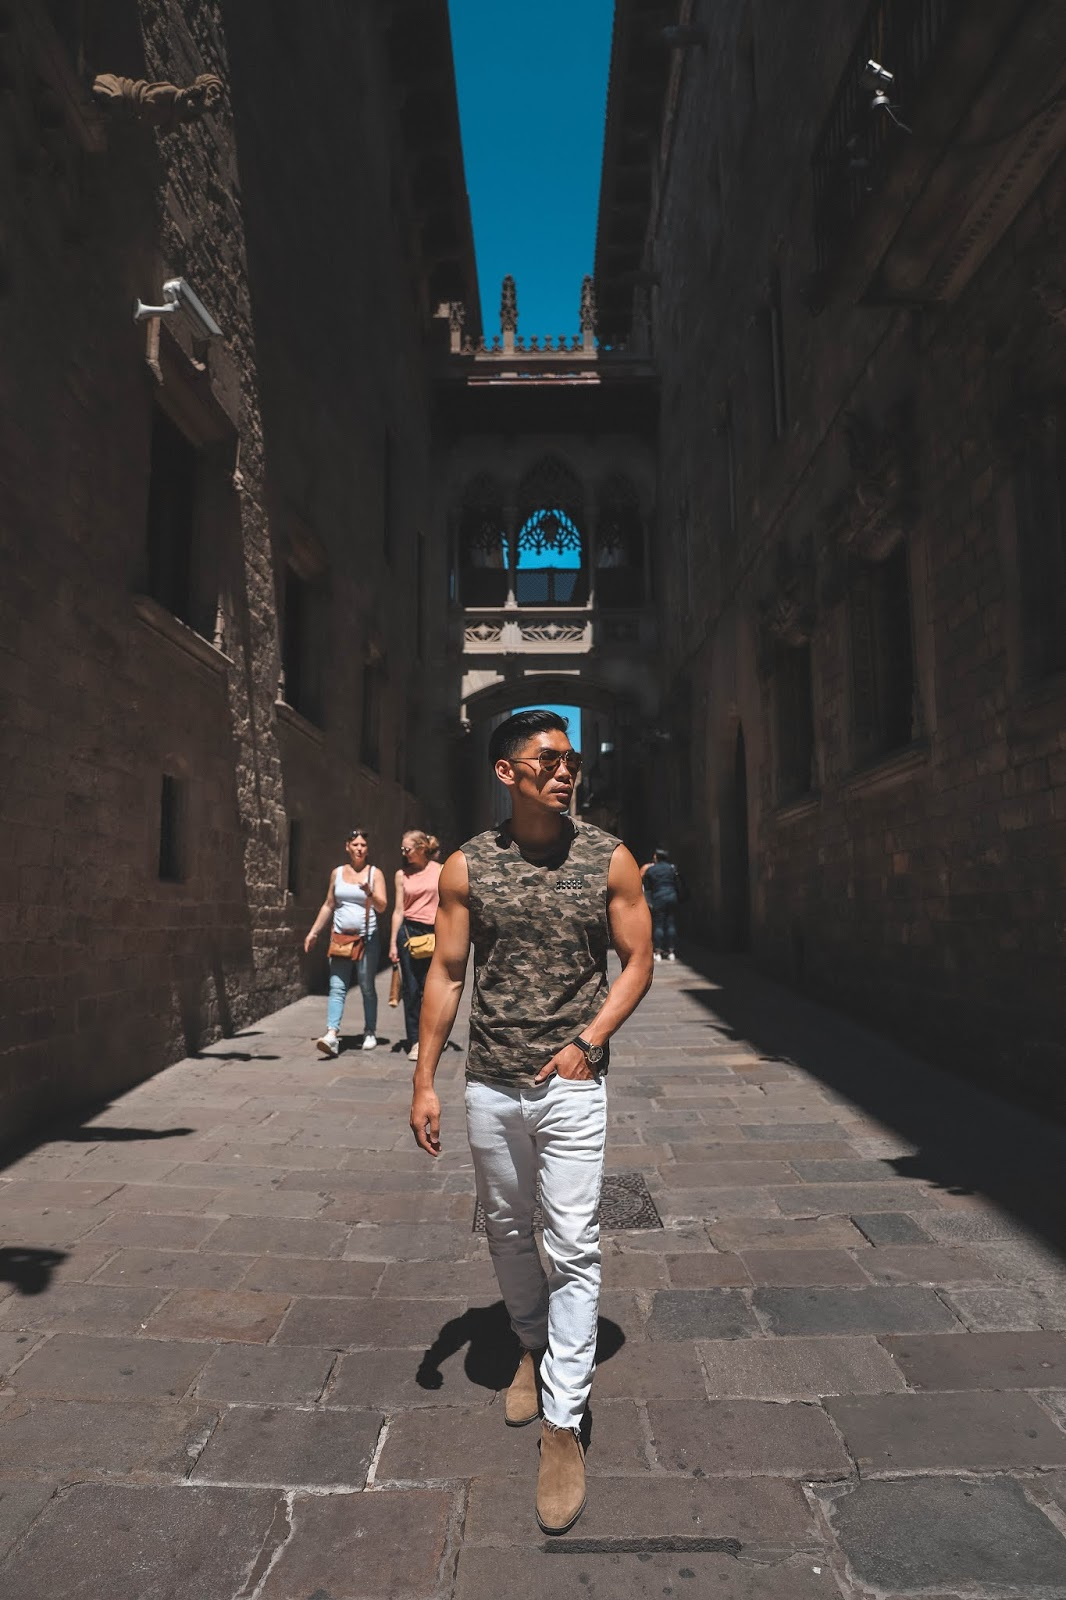 Leo Chan, Levitate Style, wearing Camo Shirt and White Jeans in Barcelona | Asian Model, Asian Blogger